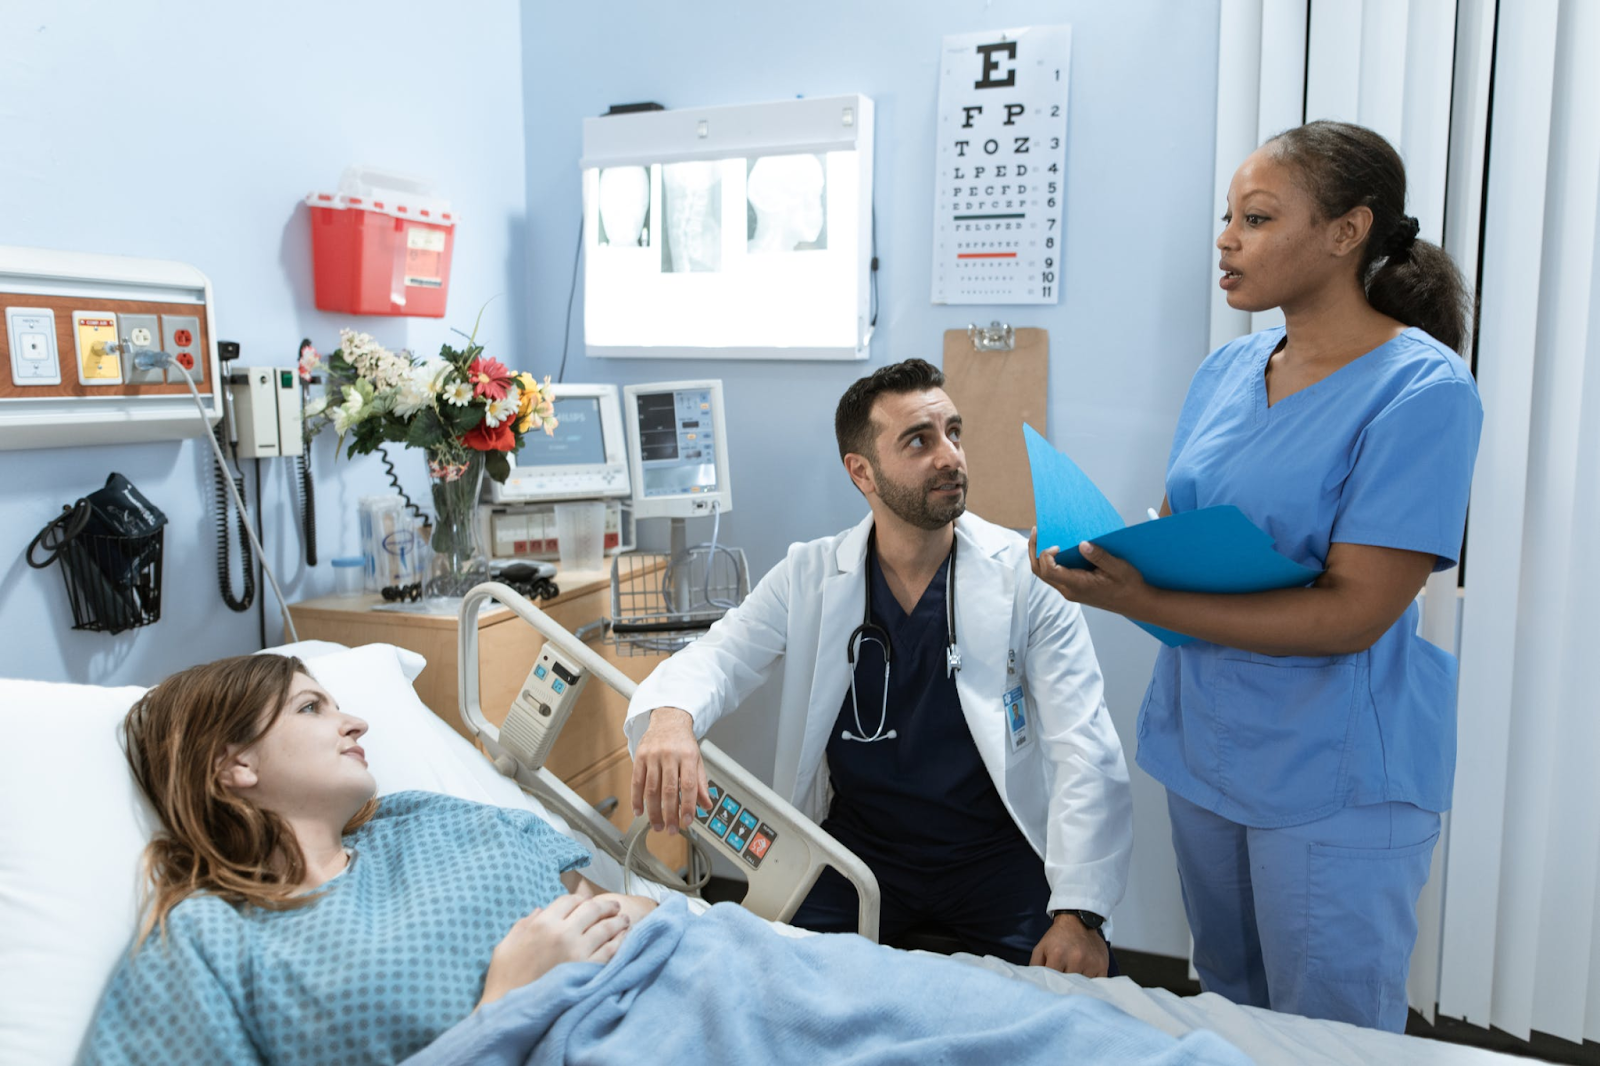 5 Tips for Applying to Medical School